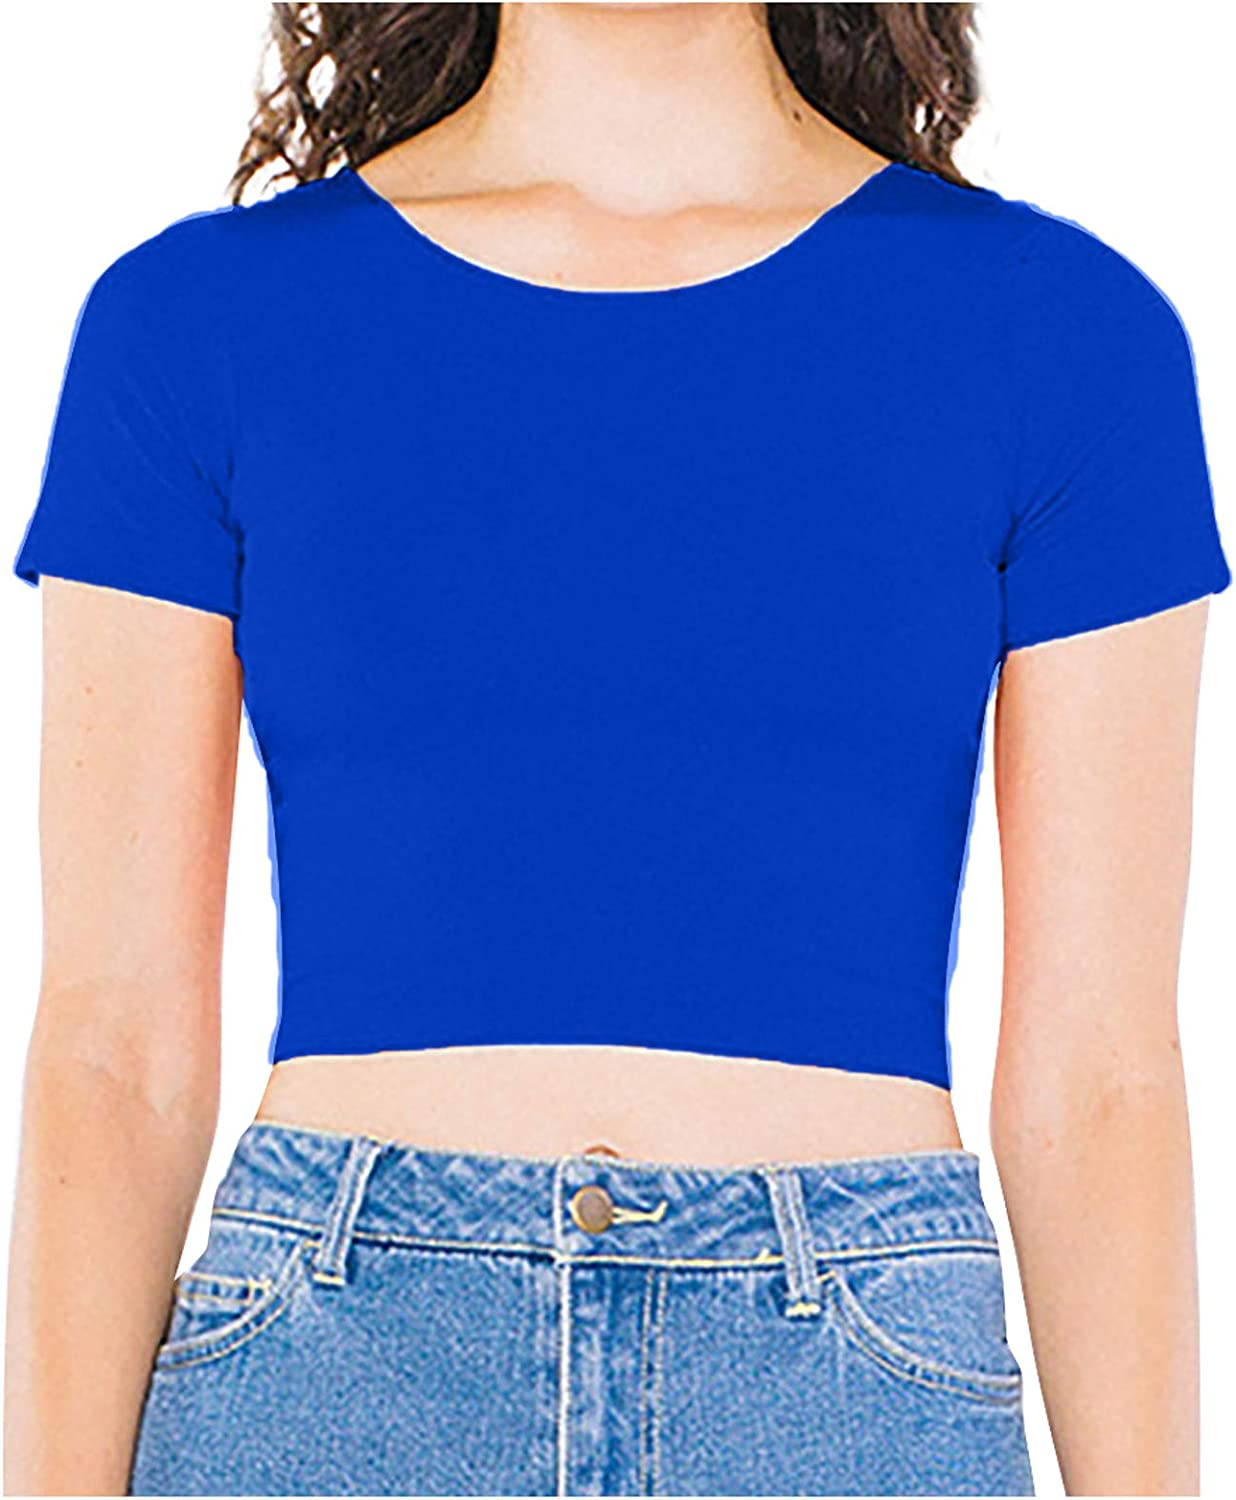 Women's Short Sleeve T-Shirt Sexy Round Neck Solid Navel Slim Fit Fashion Casual Crop Tops T-Shirt Blouse